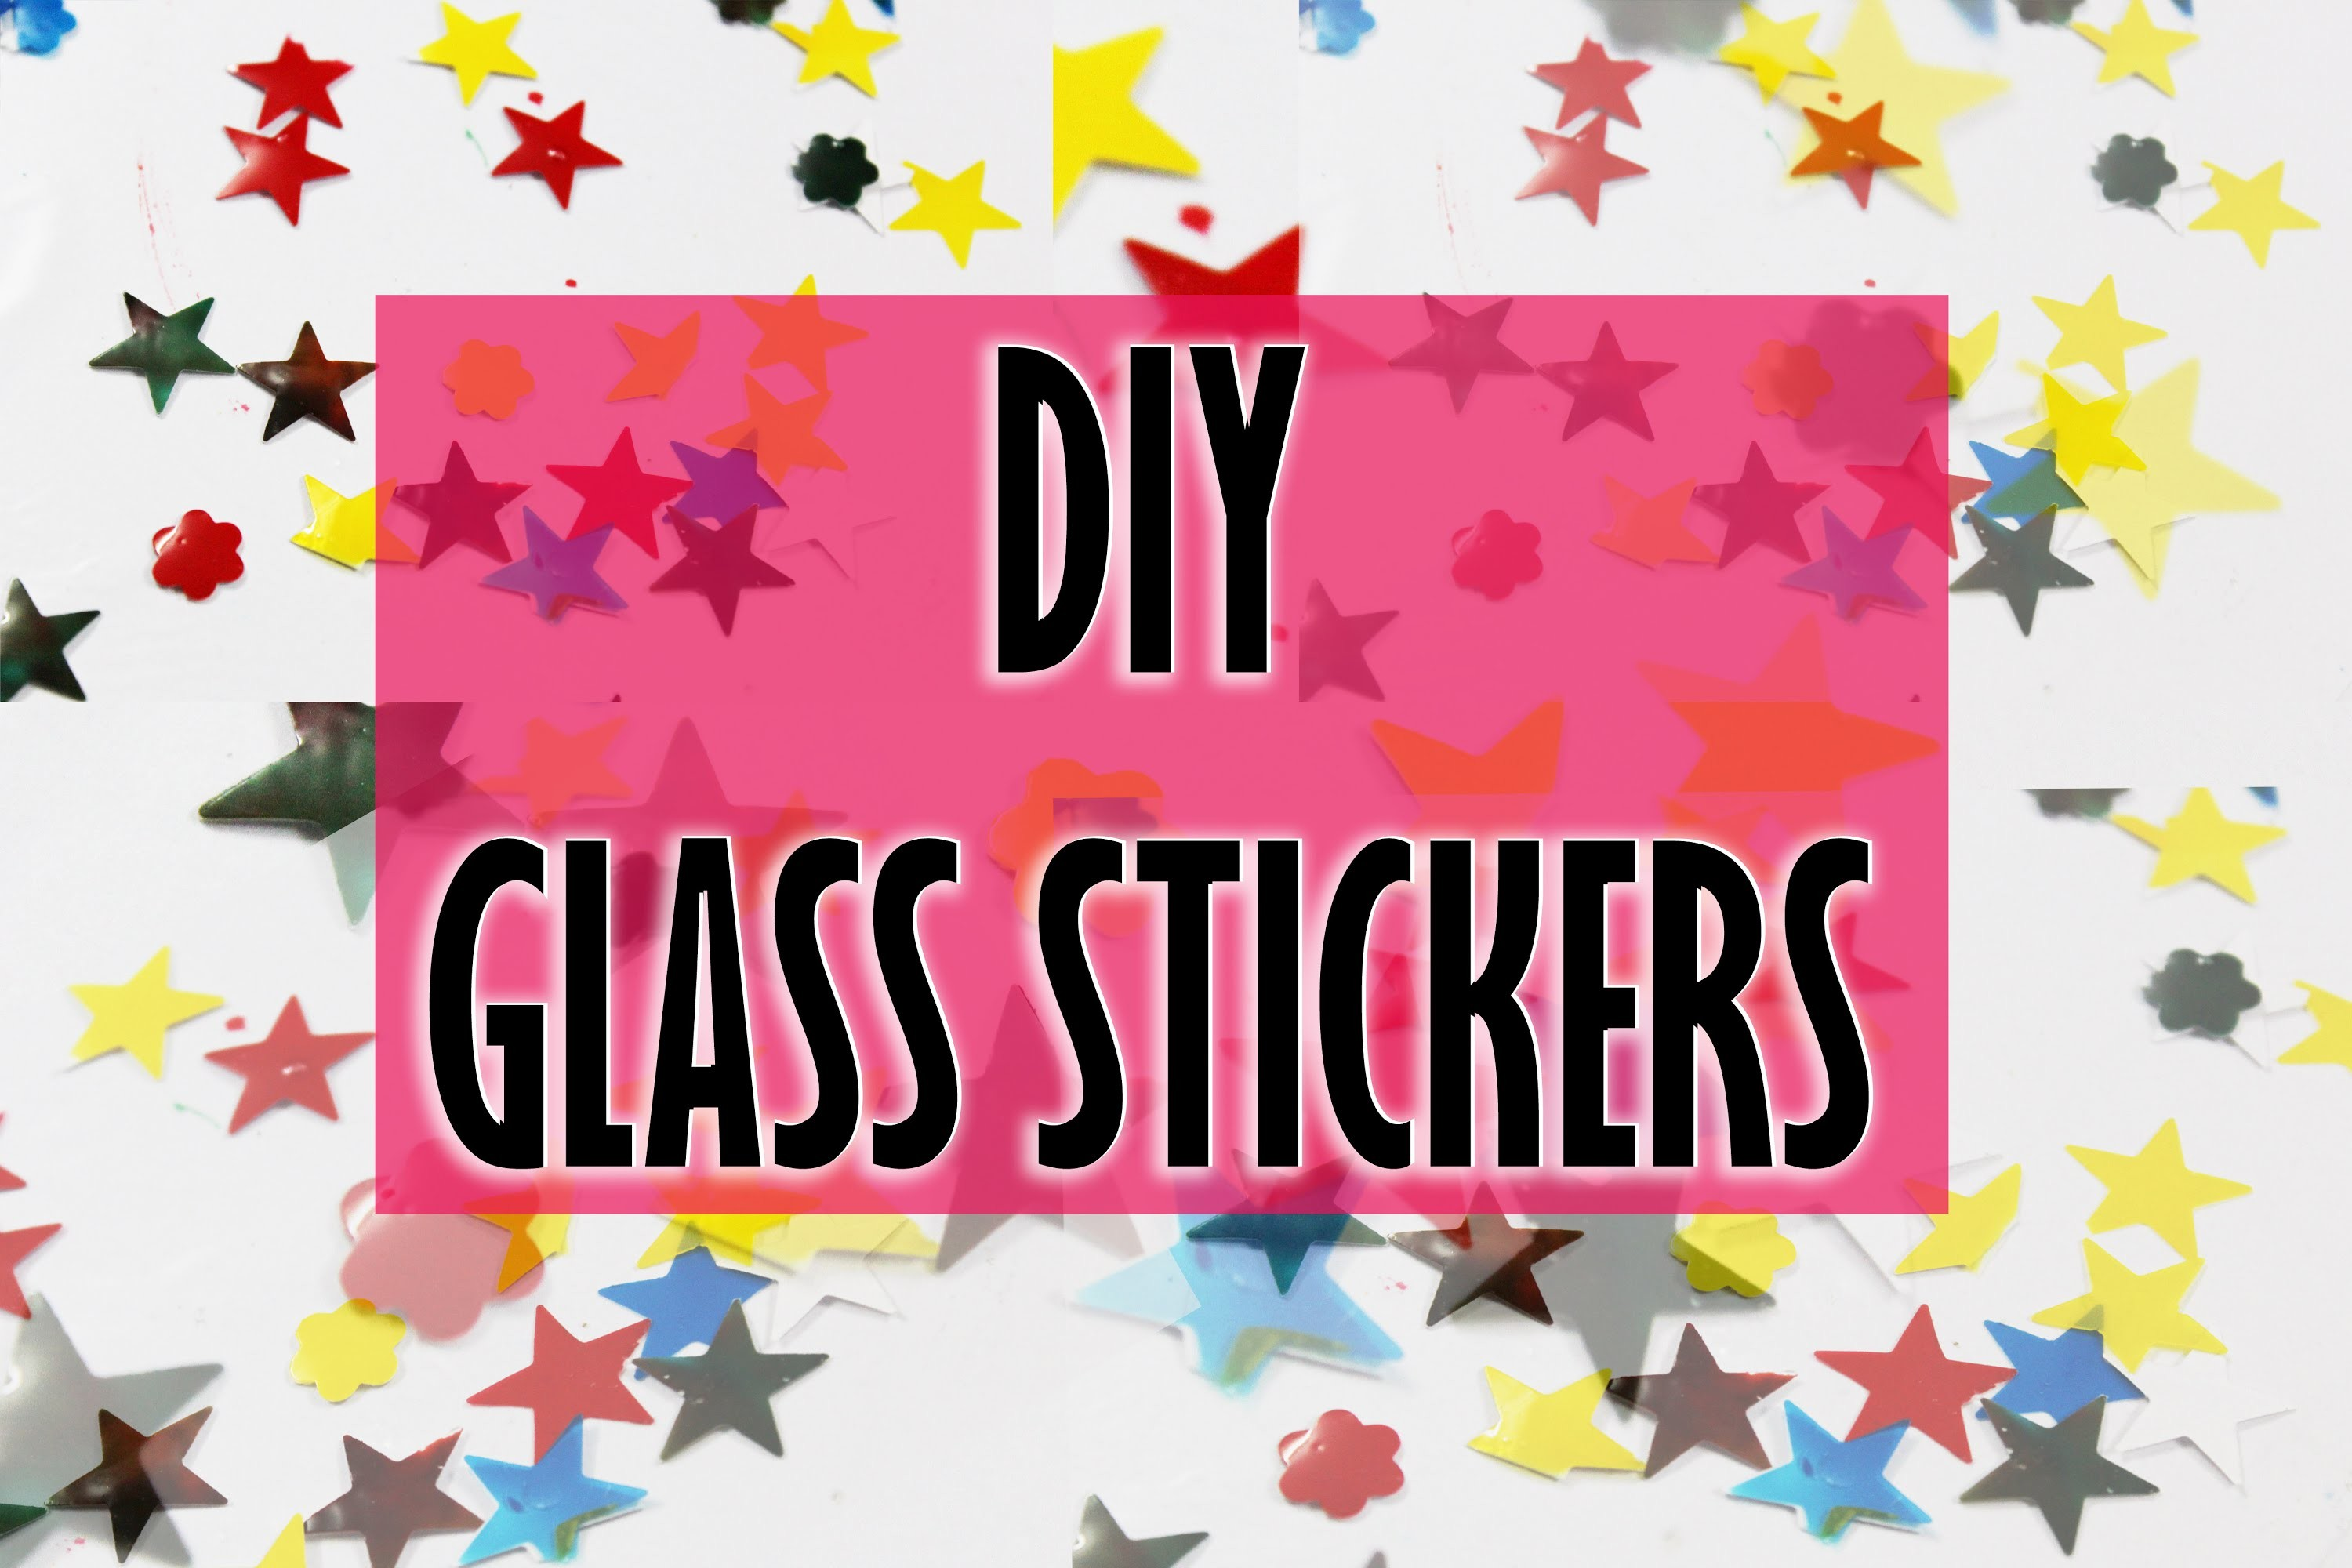 DIY Glass Stickers #OFT2D